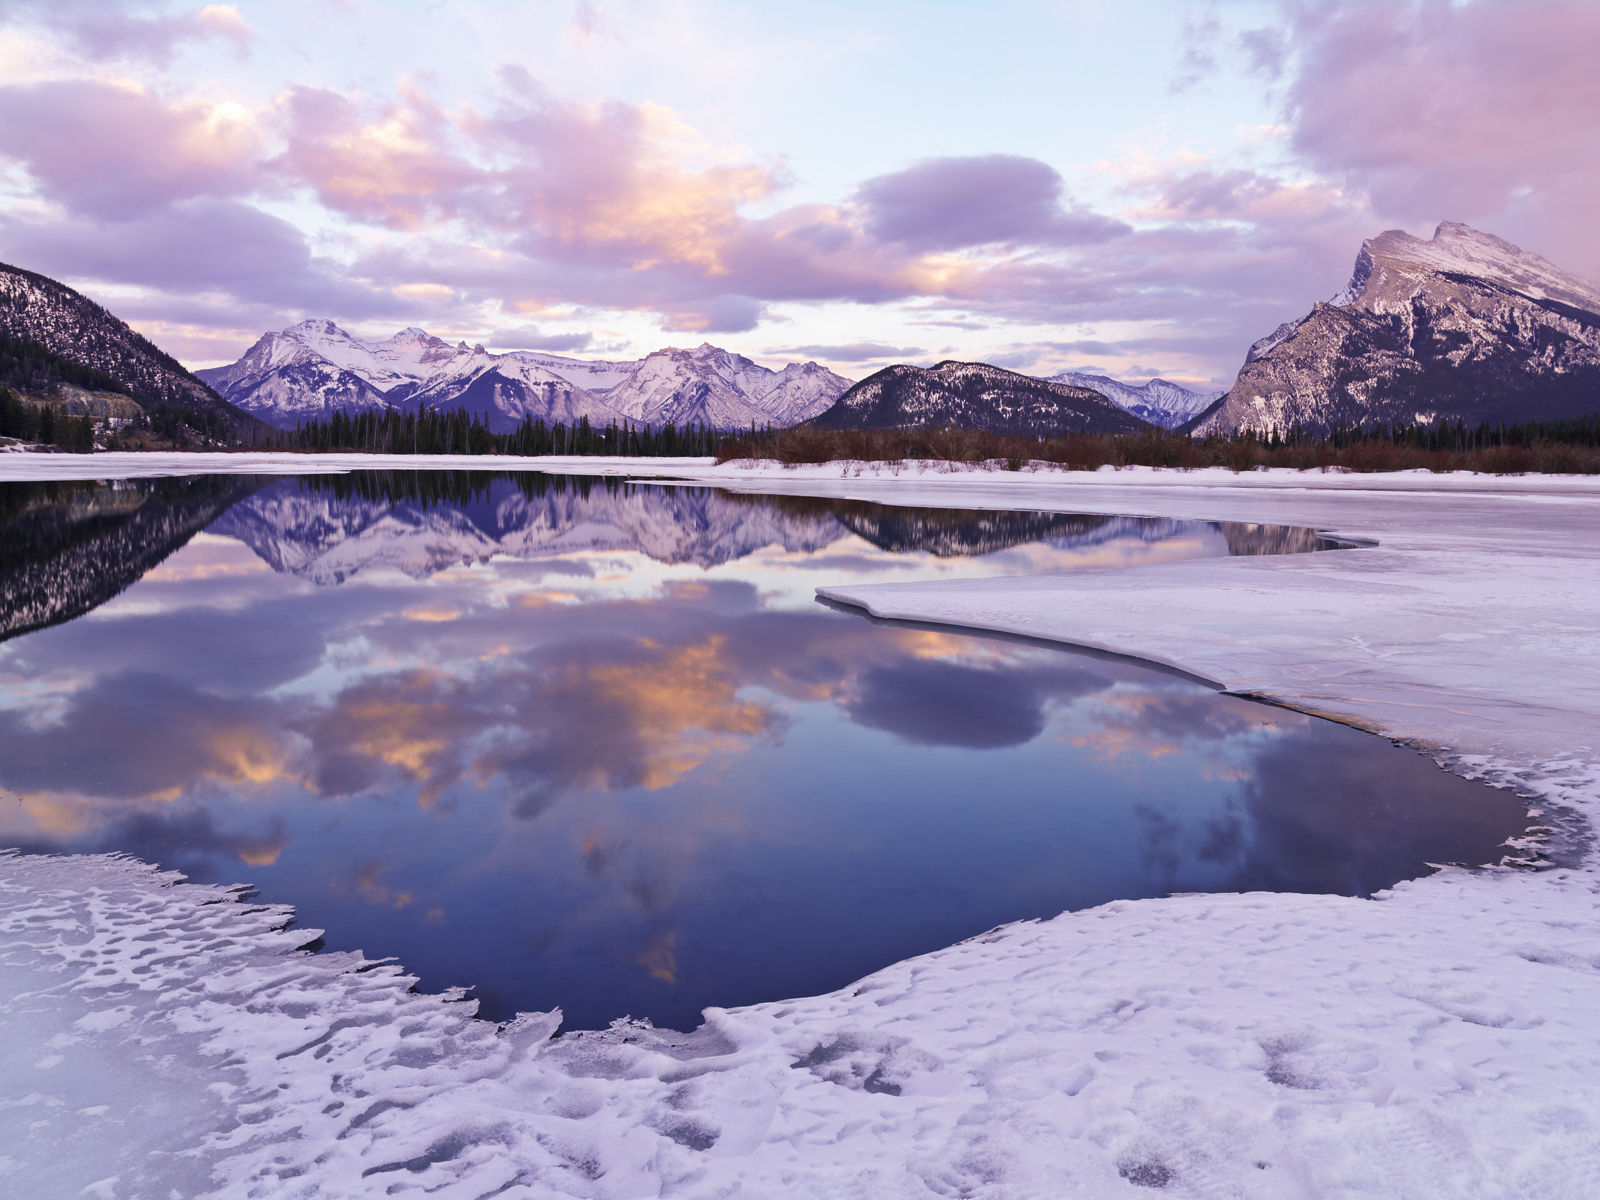 Banff National Park Vermilion Lakes in winter with Mount Rundle